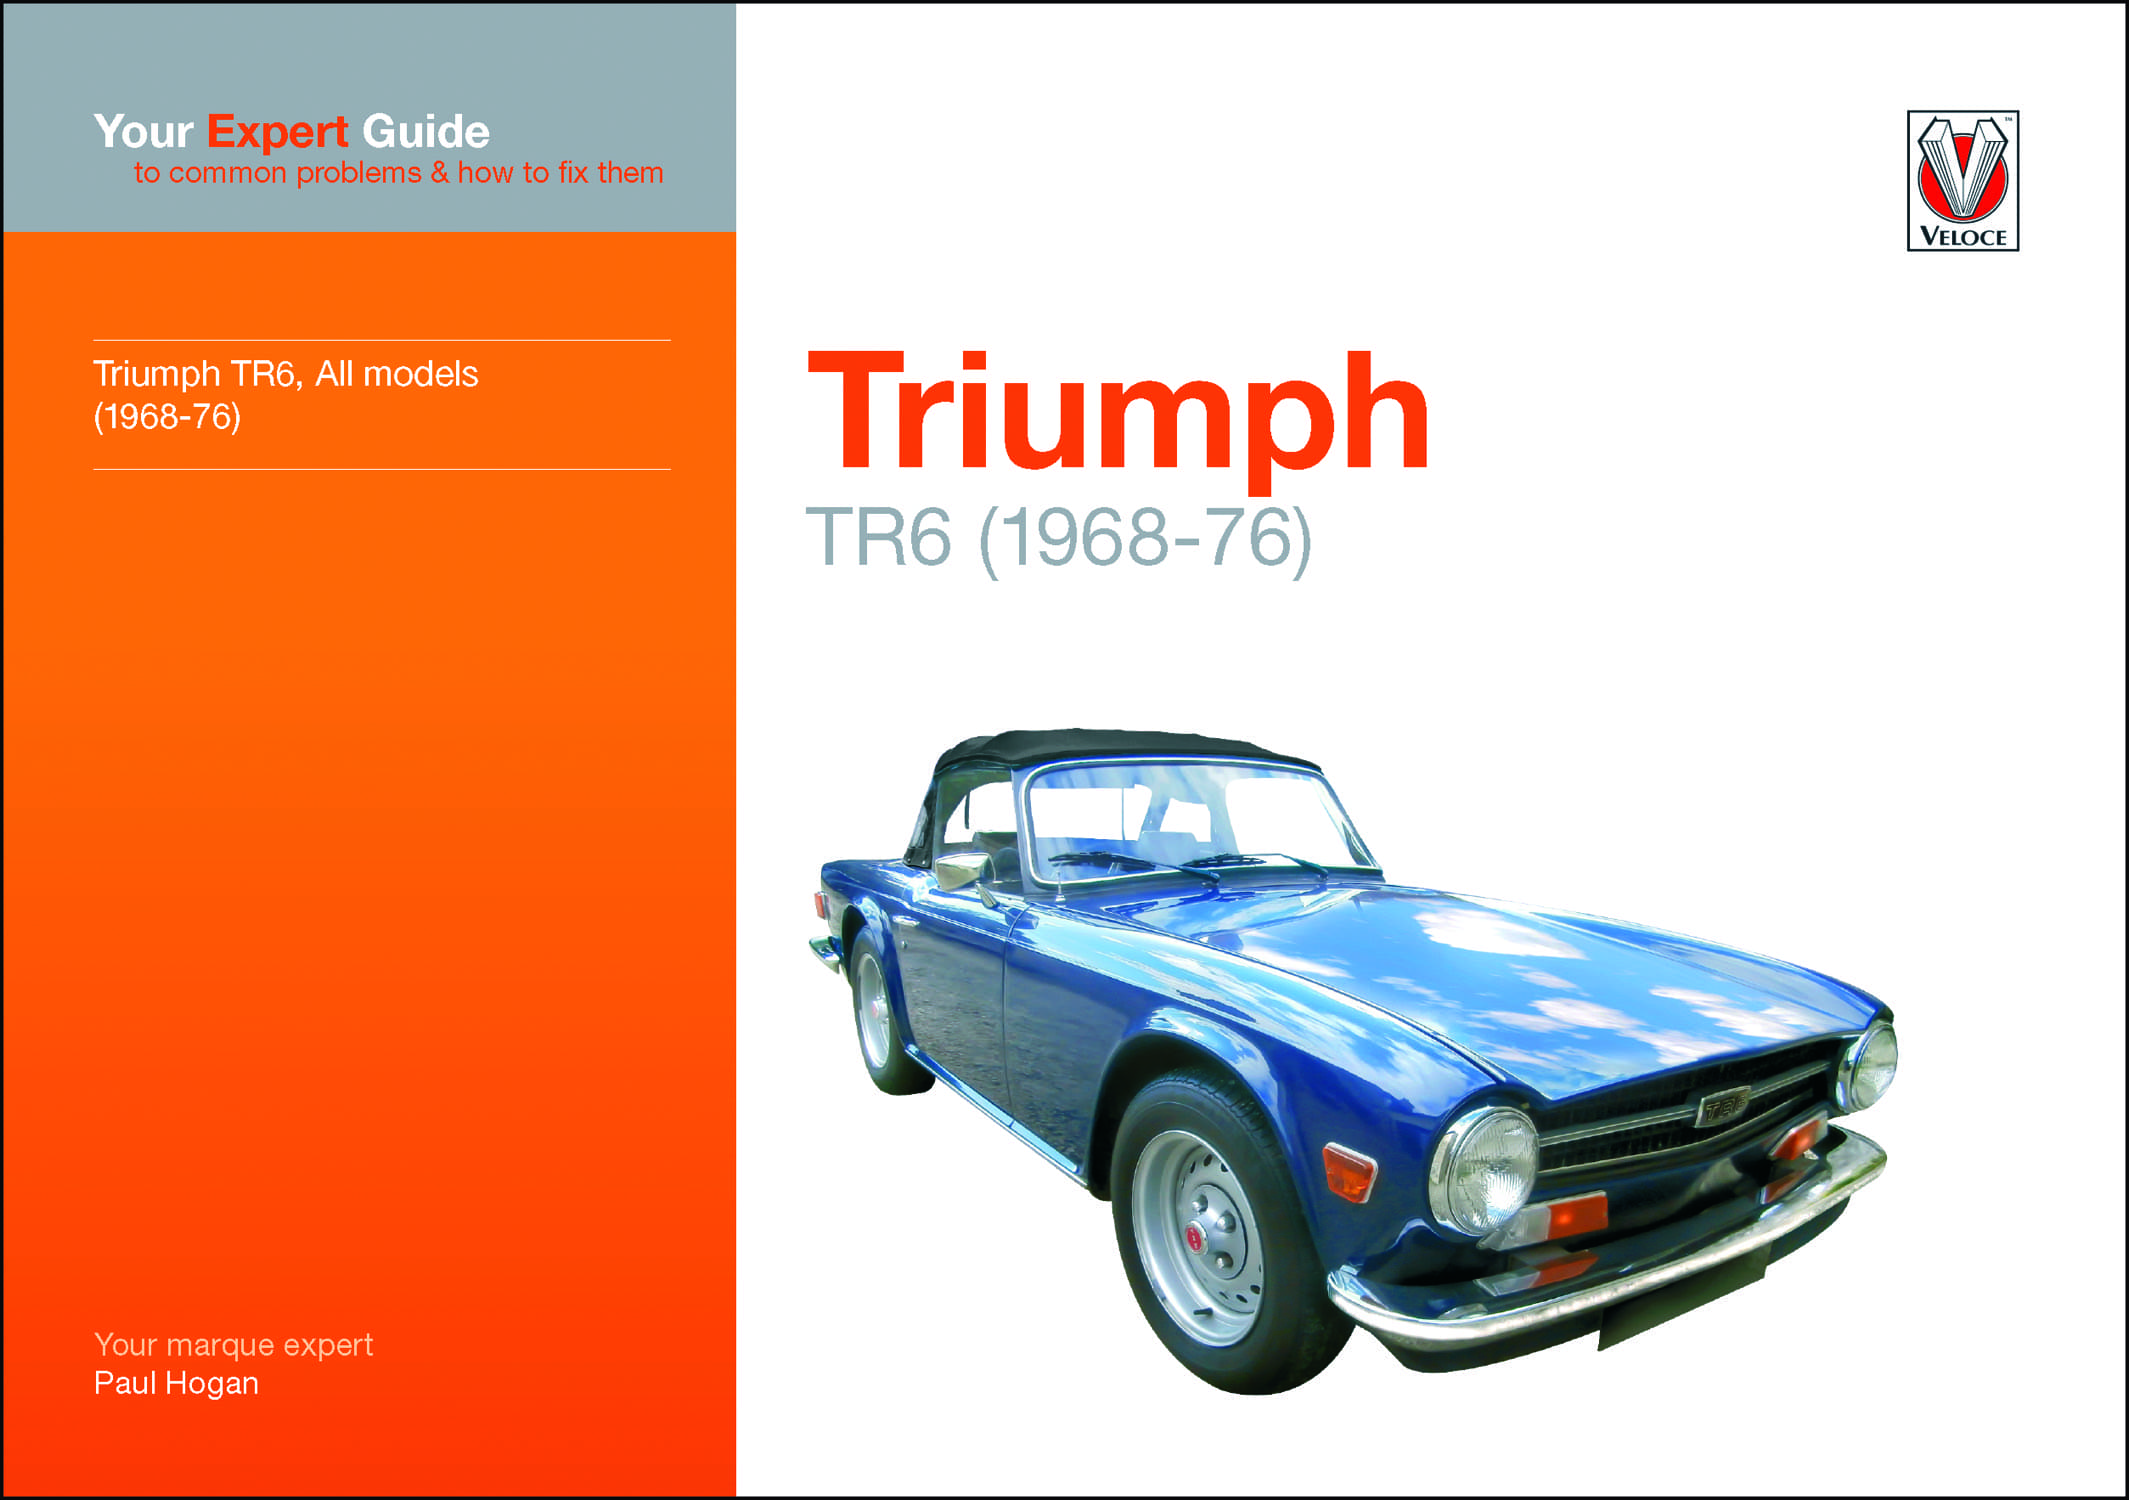 Triumph TR6 – Your expert guide to common problems & how to fix them cover